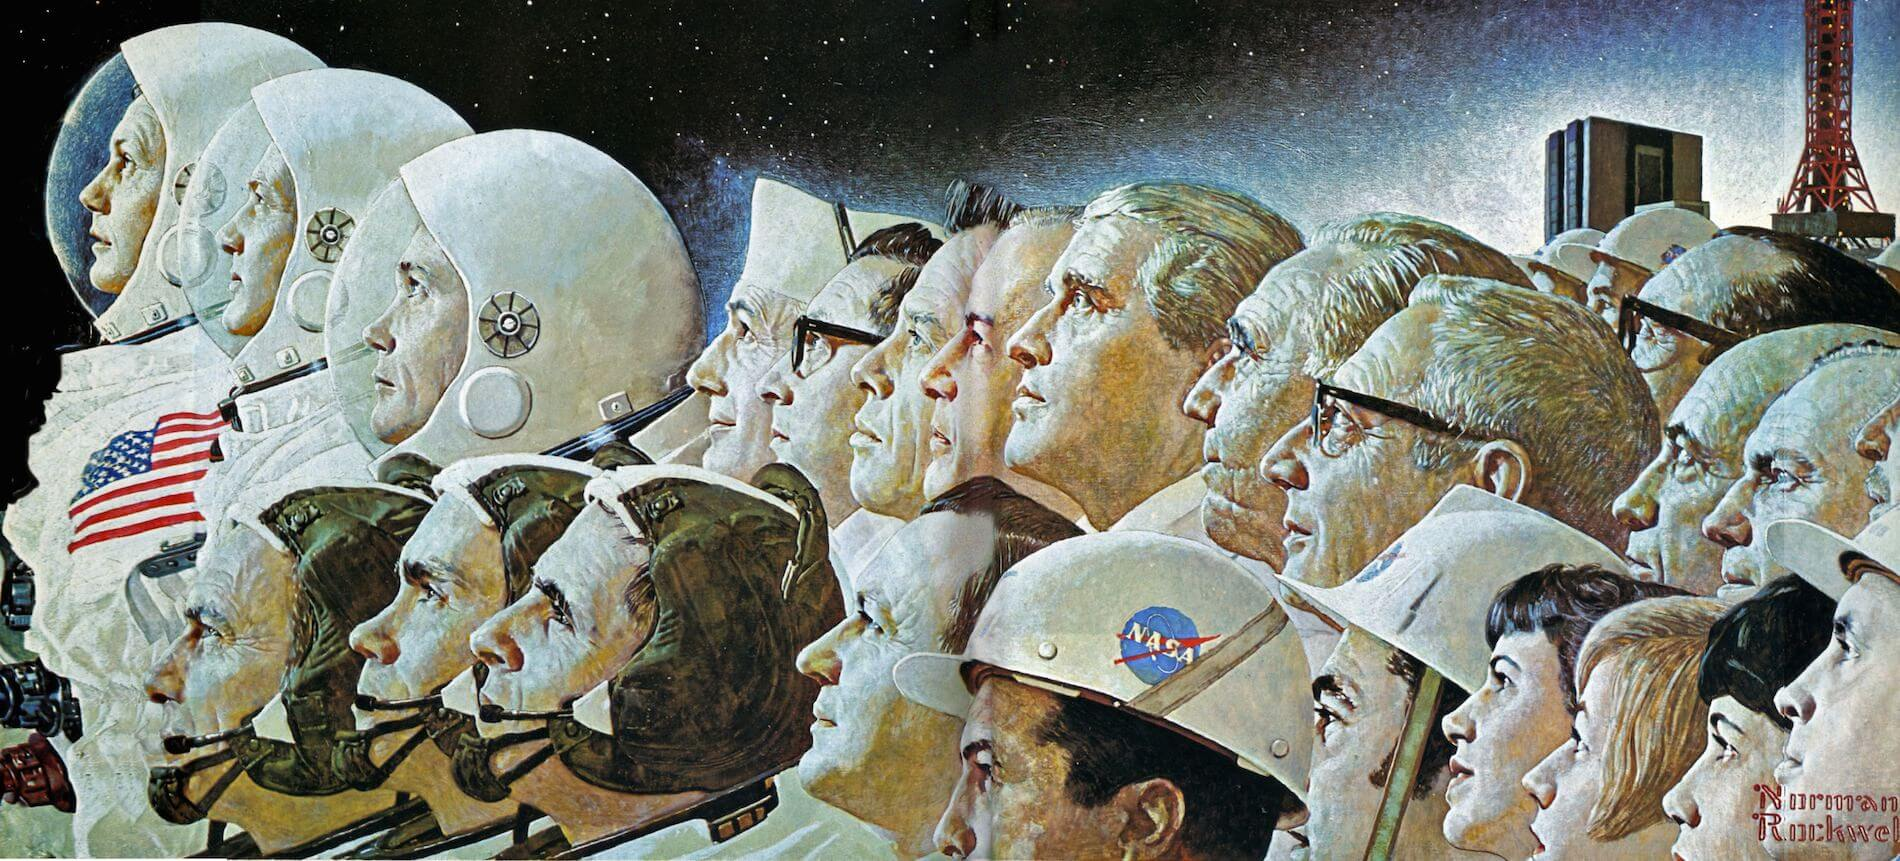 Apollo Space Program 1969 Norman Rockwell Art